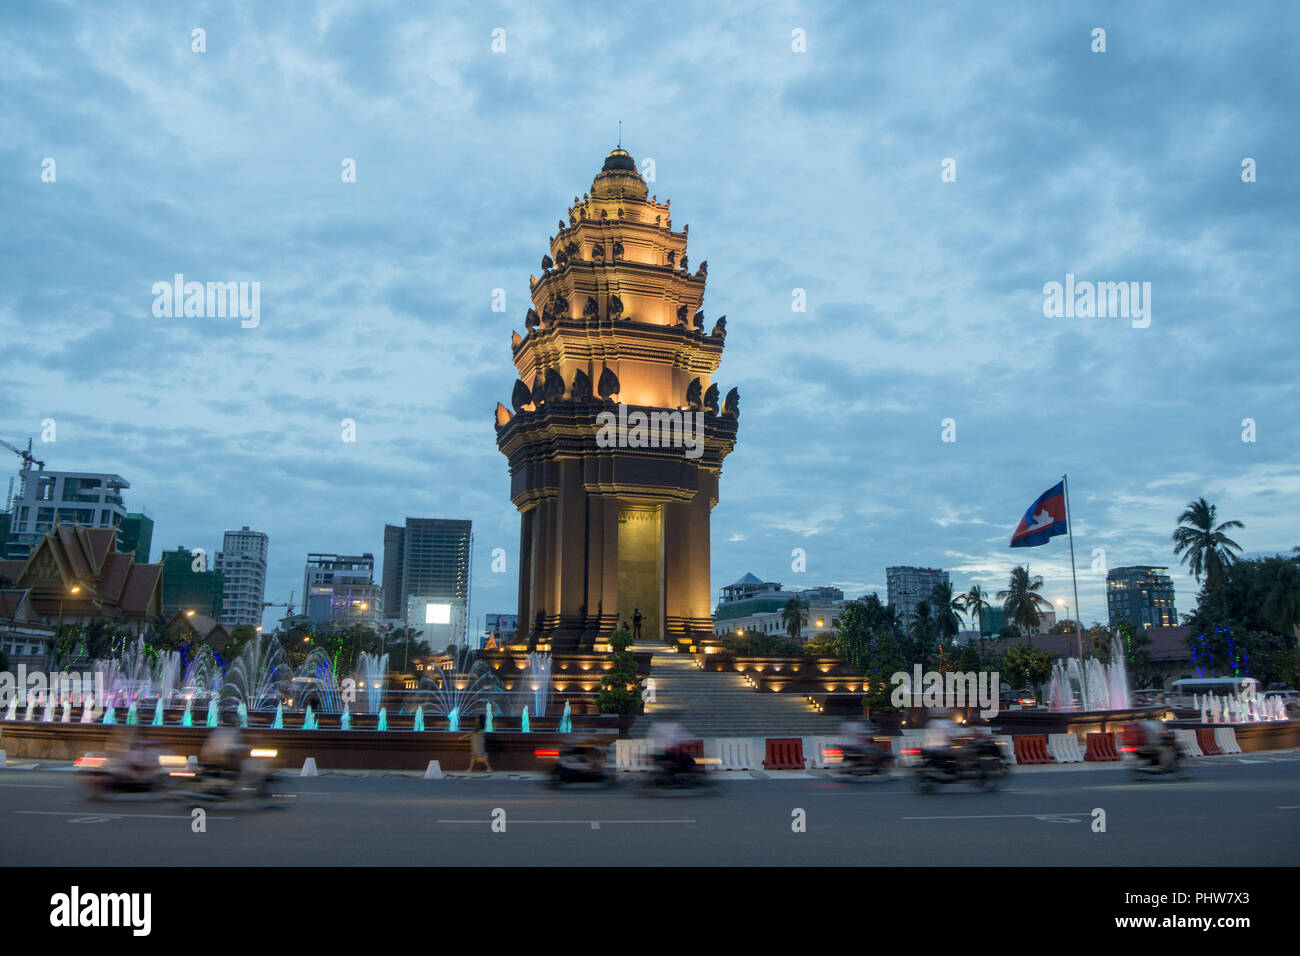 CAMBODIA PHNOM PENH INDEPENDENCE MONUMENT Stock Photo